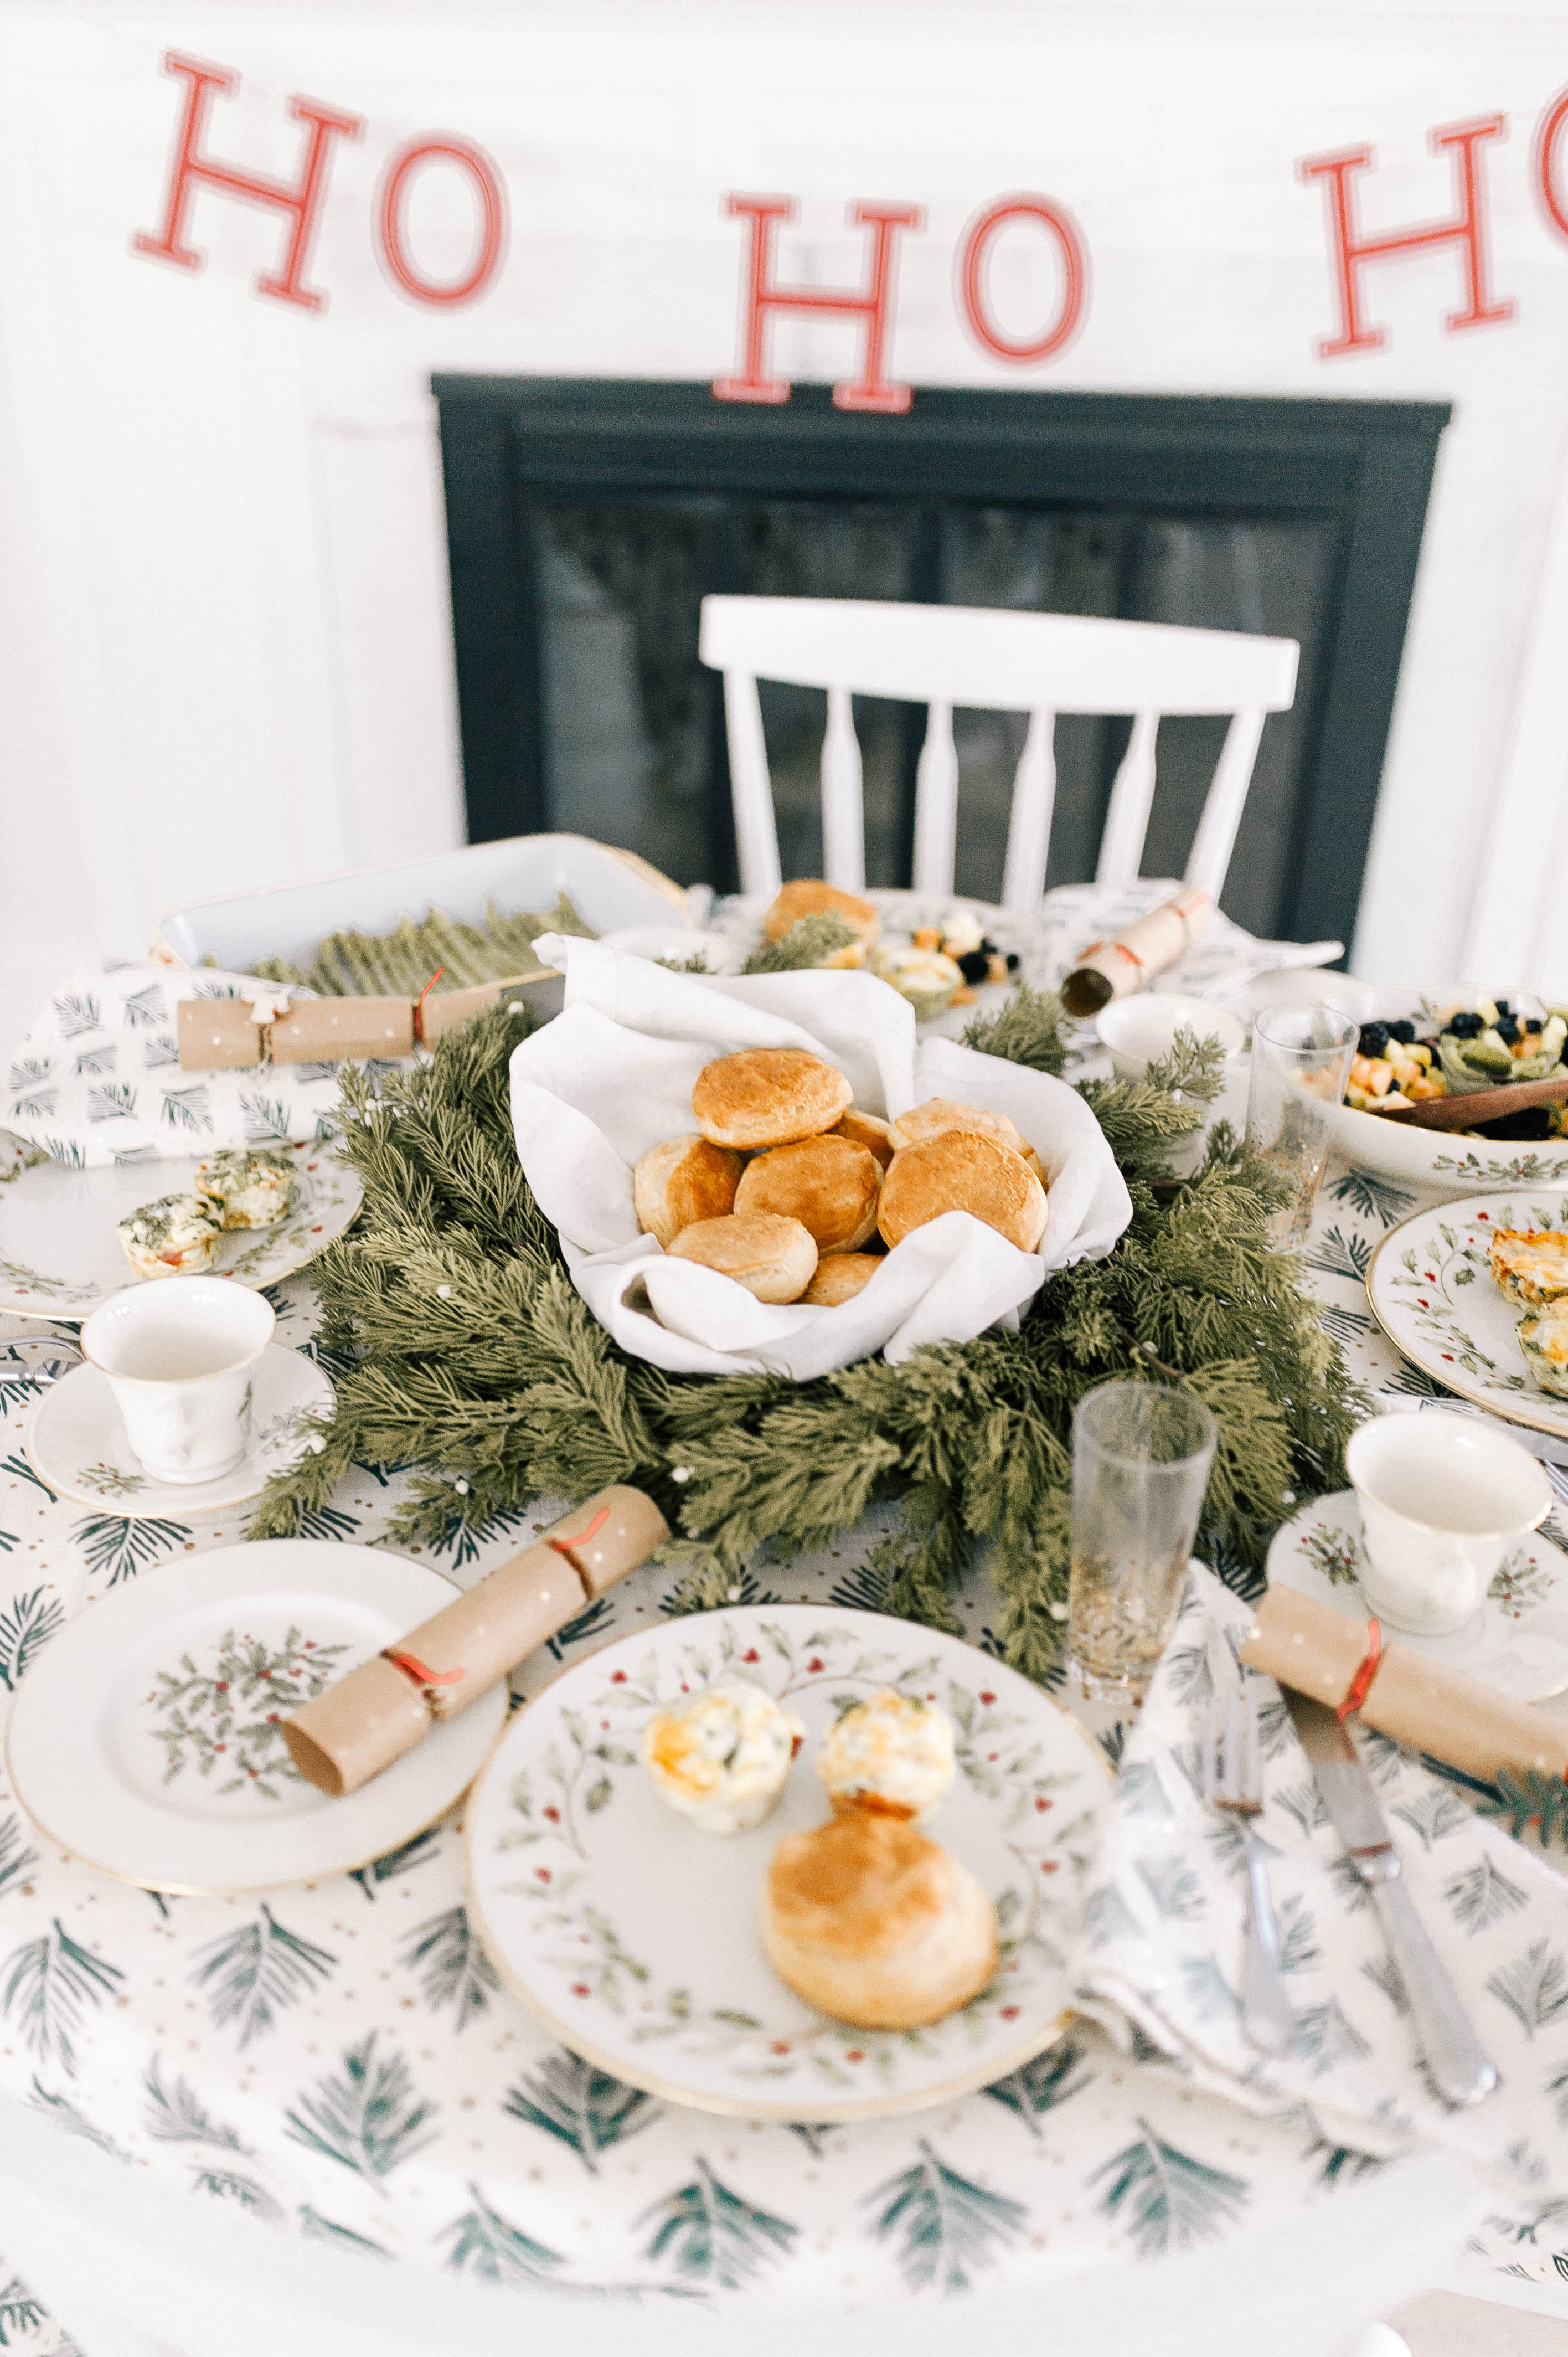 A festive Christmas day brunch using vintage china in the kitchen of Eva Amurri's Connecticut home